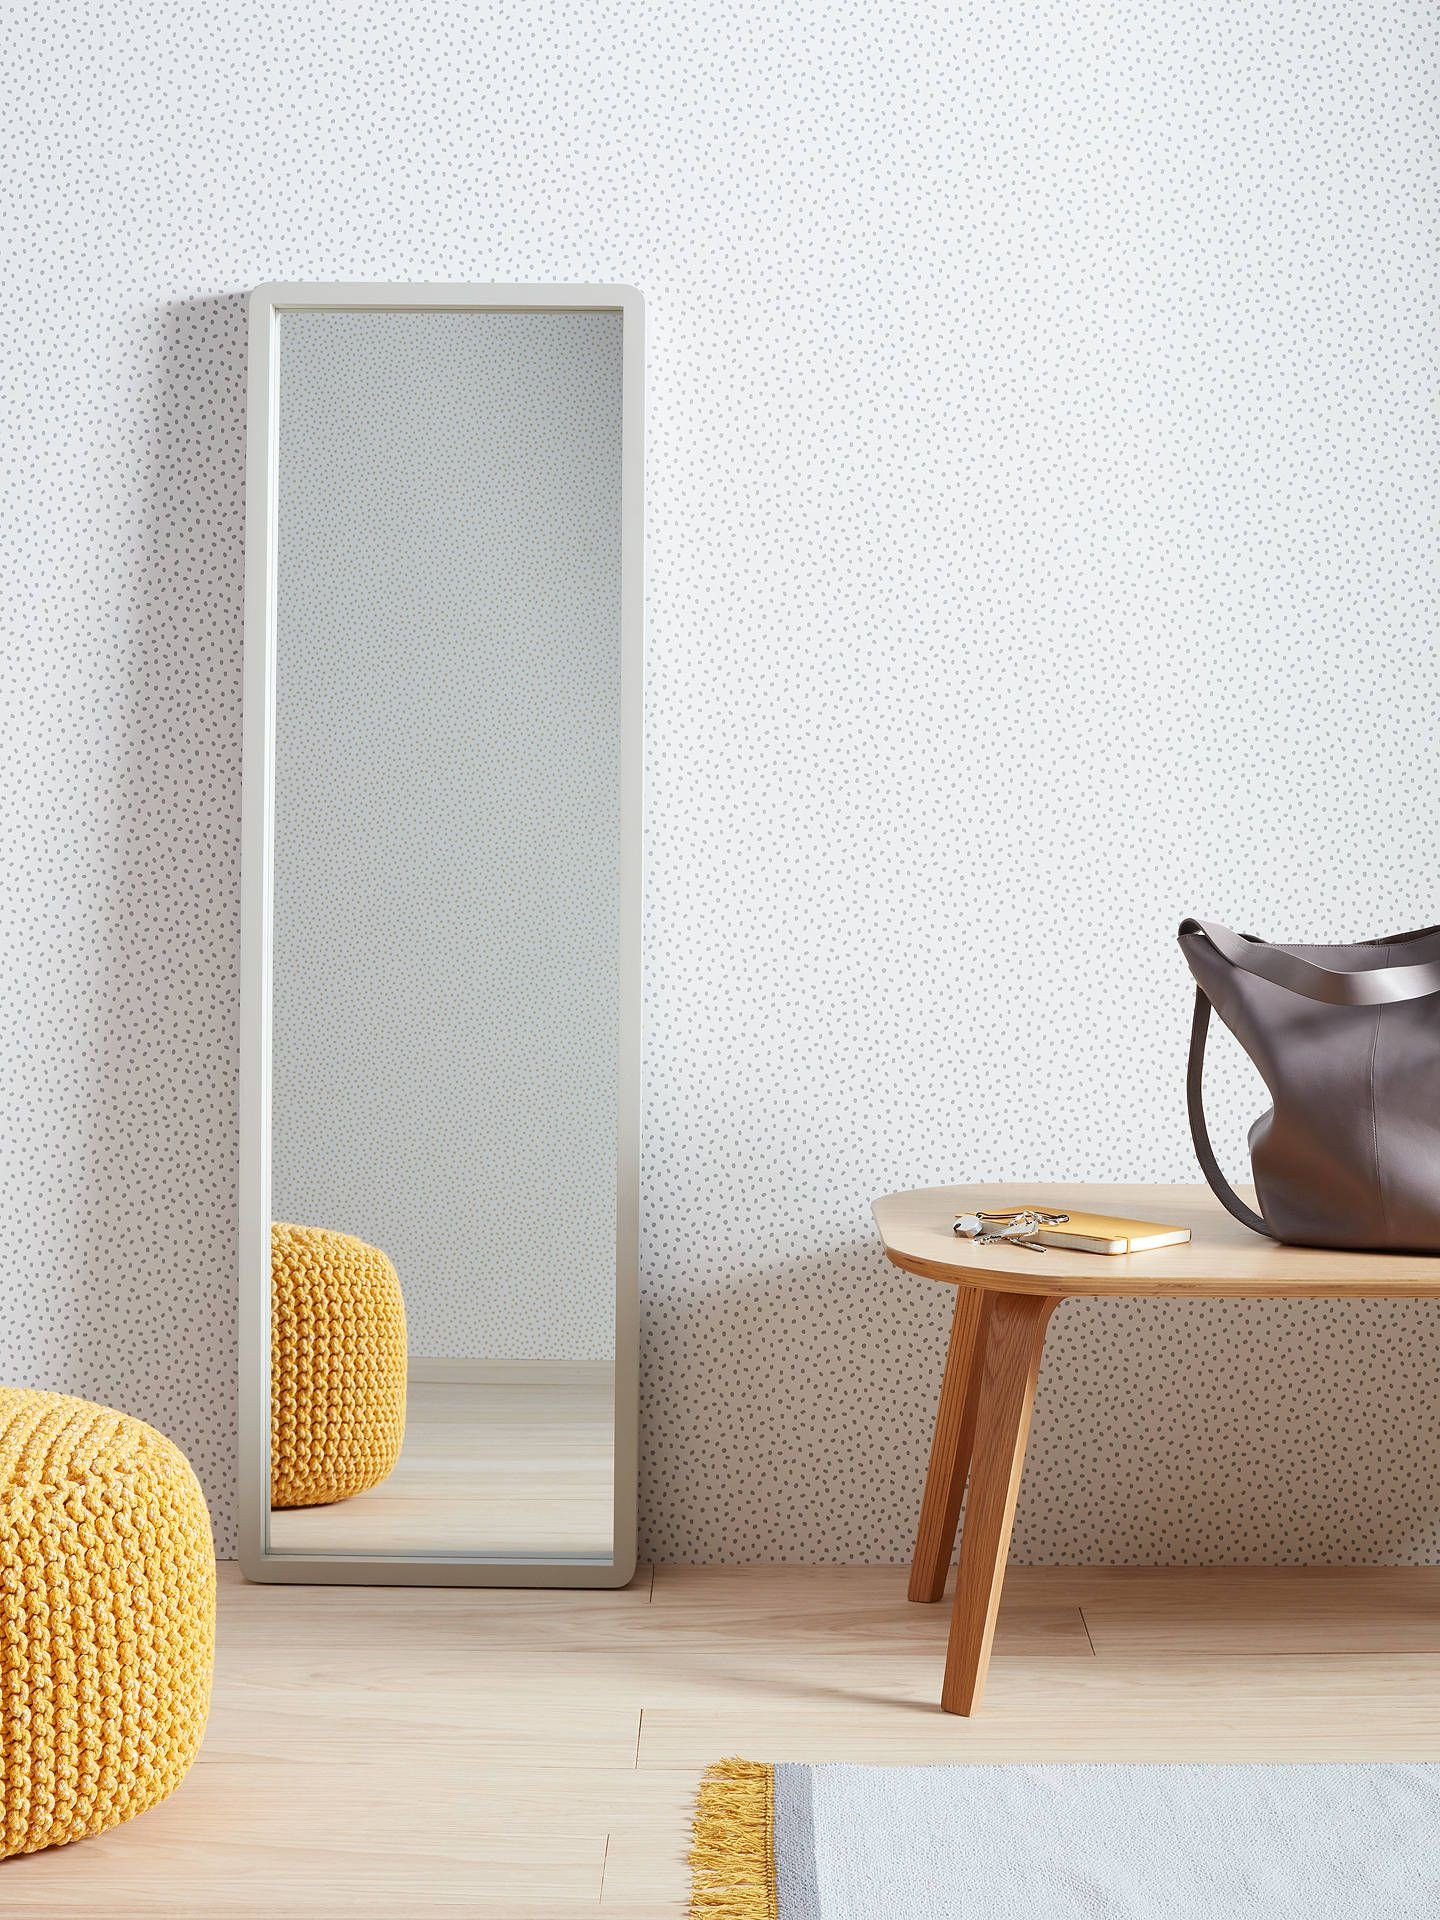 Full Length Bedroom Mirror Beautiful House by John Lewis Rounded Corner Full Length Mirror 140 X